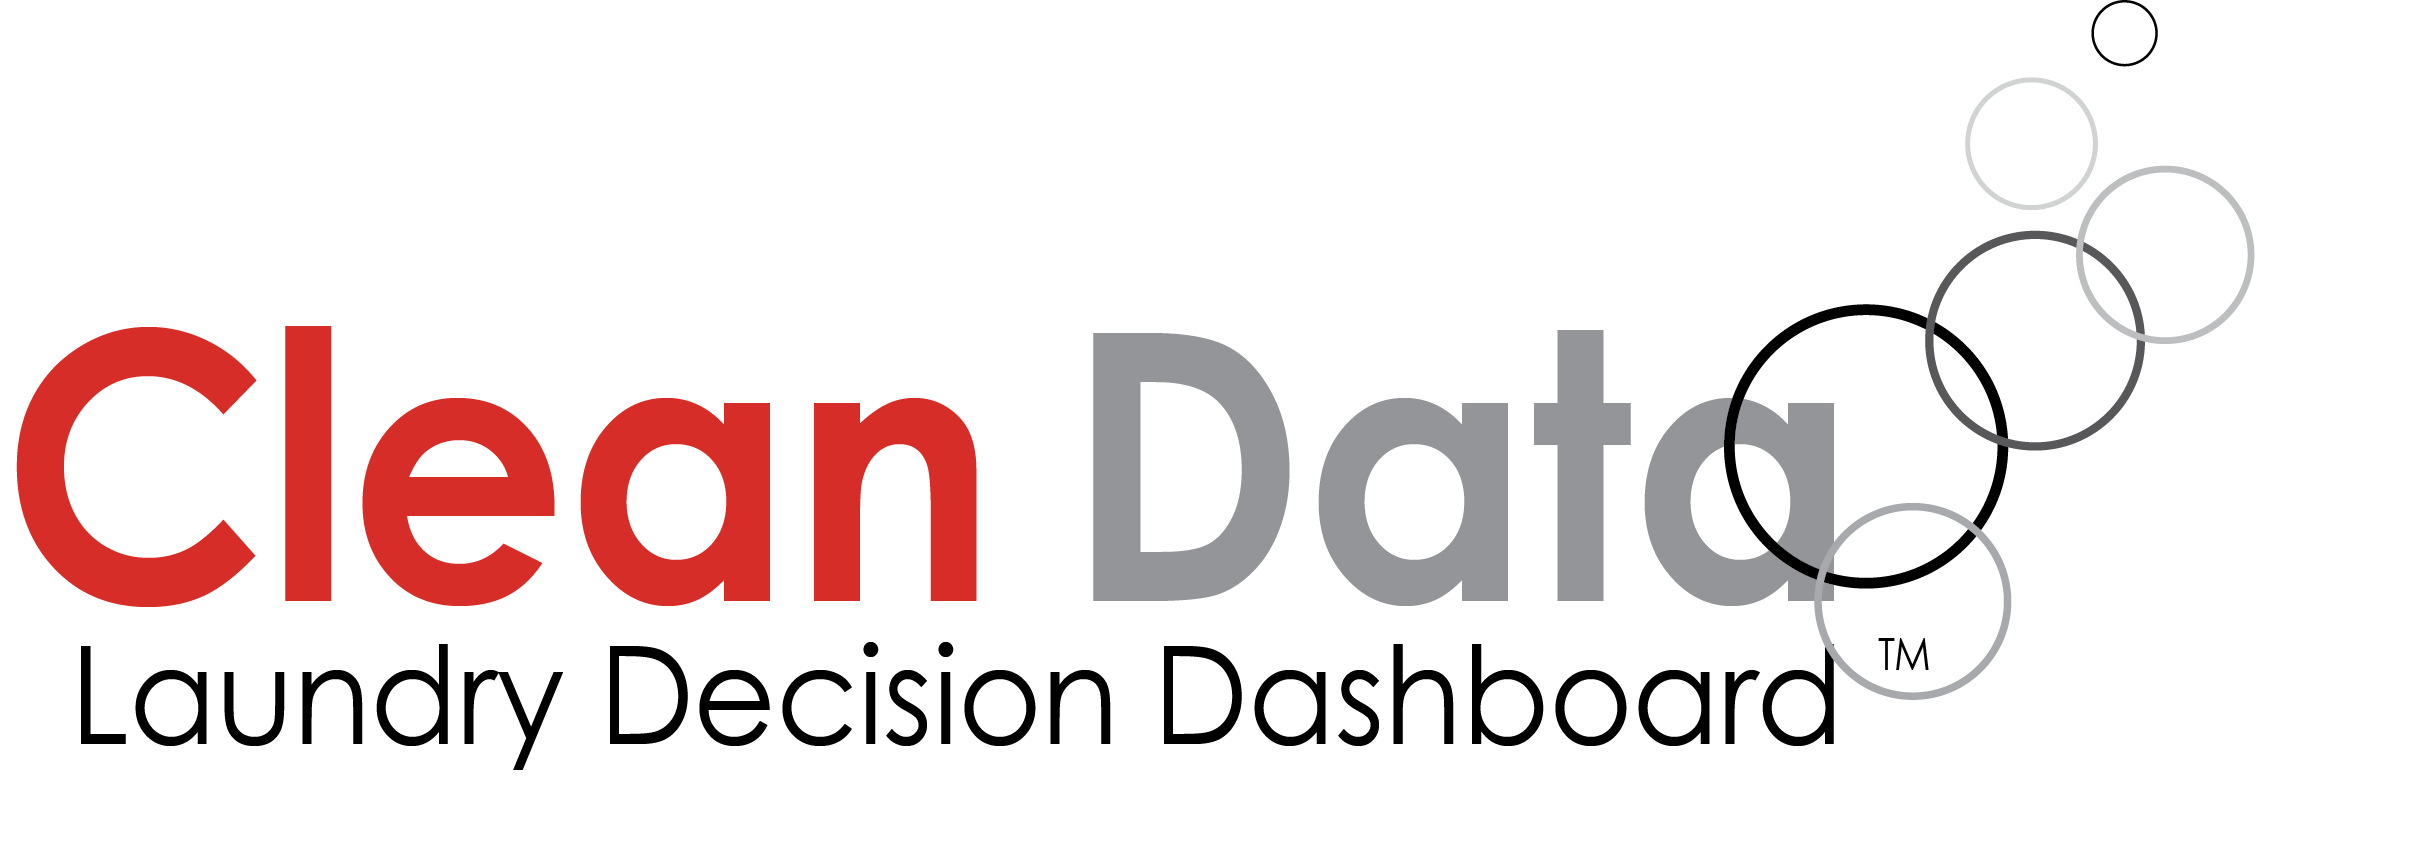 Clean Data Laundry Decision Dashboard